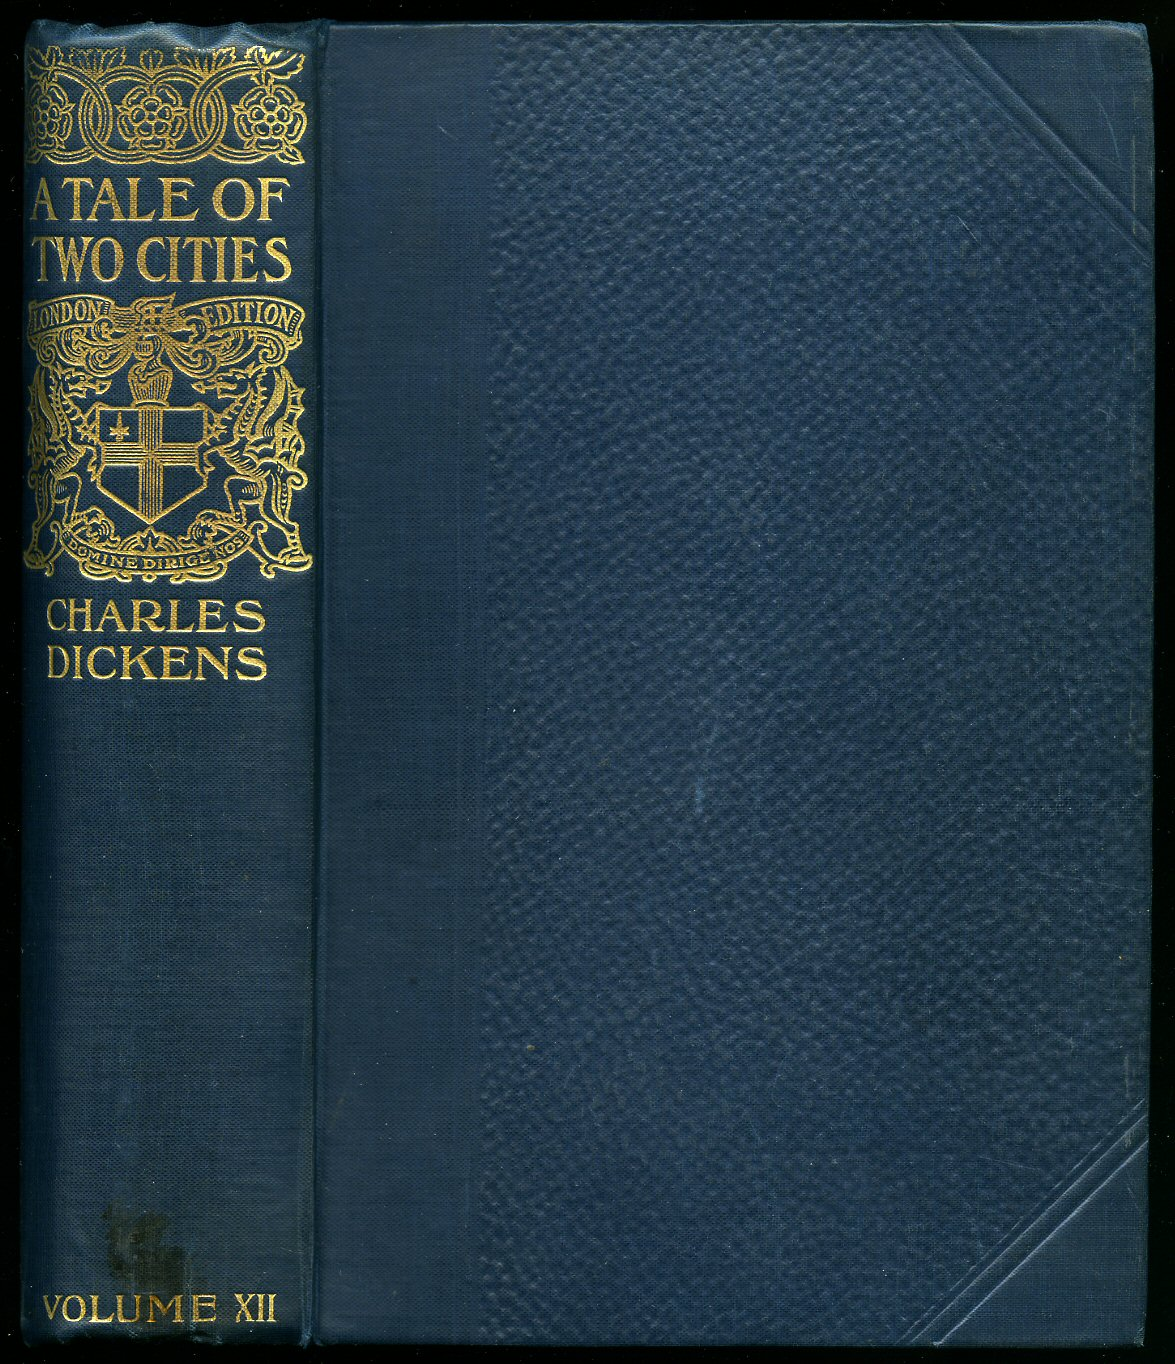 dickens charles dickens charles 1812 1870 illustrated by hablot k browne